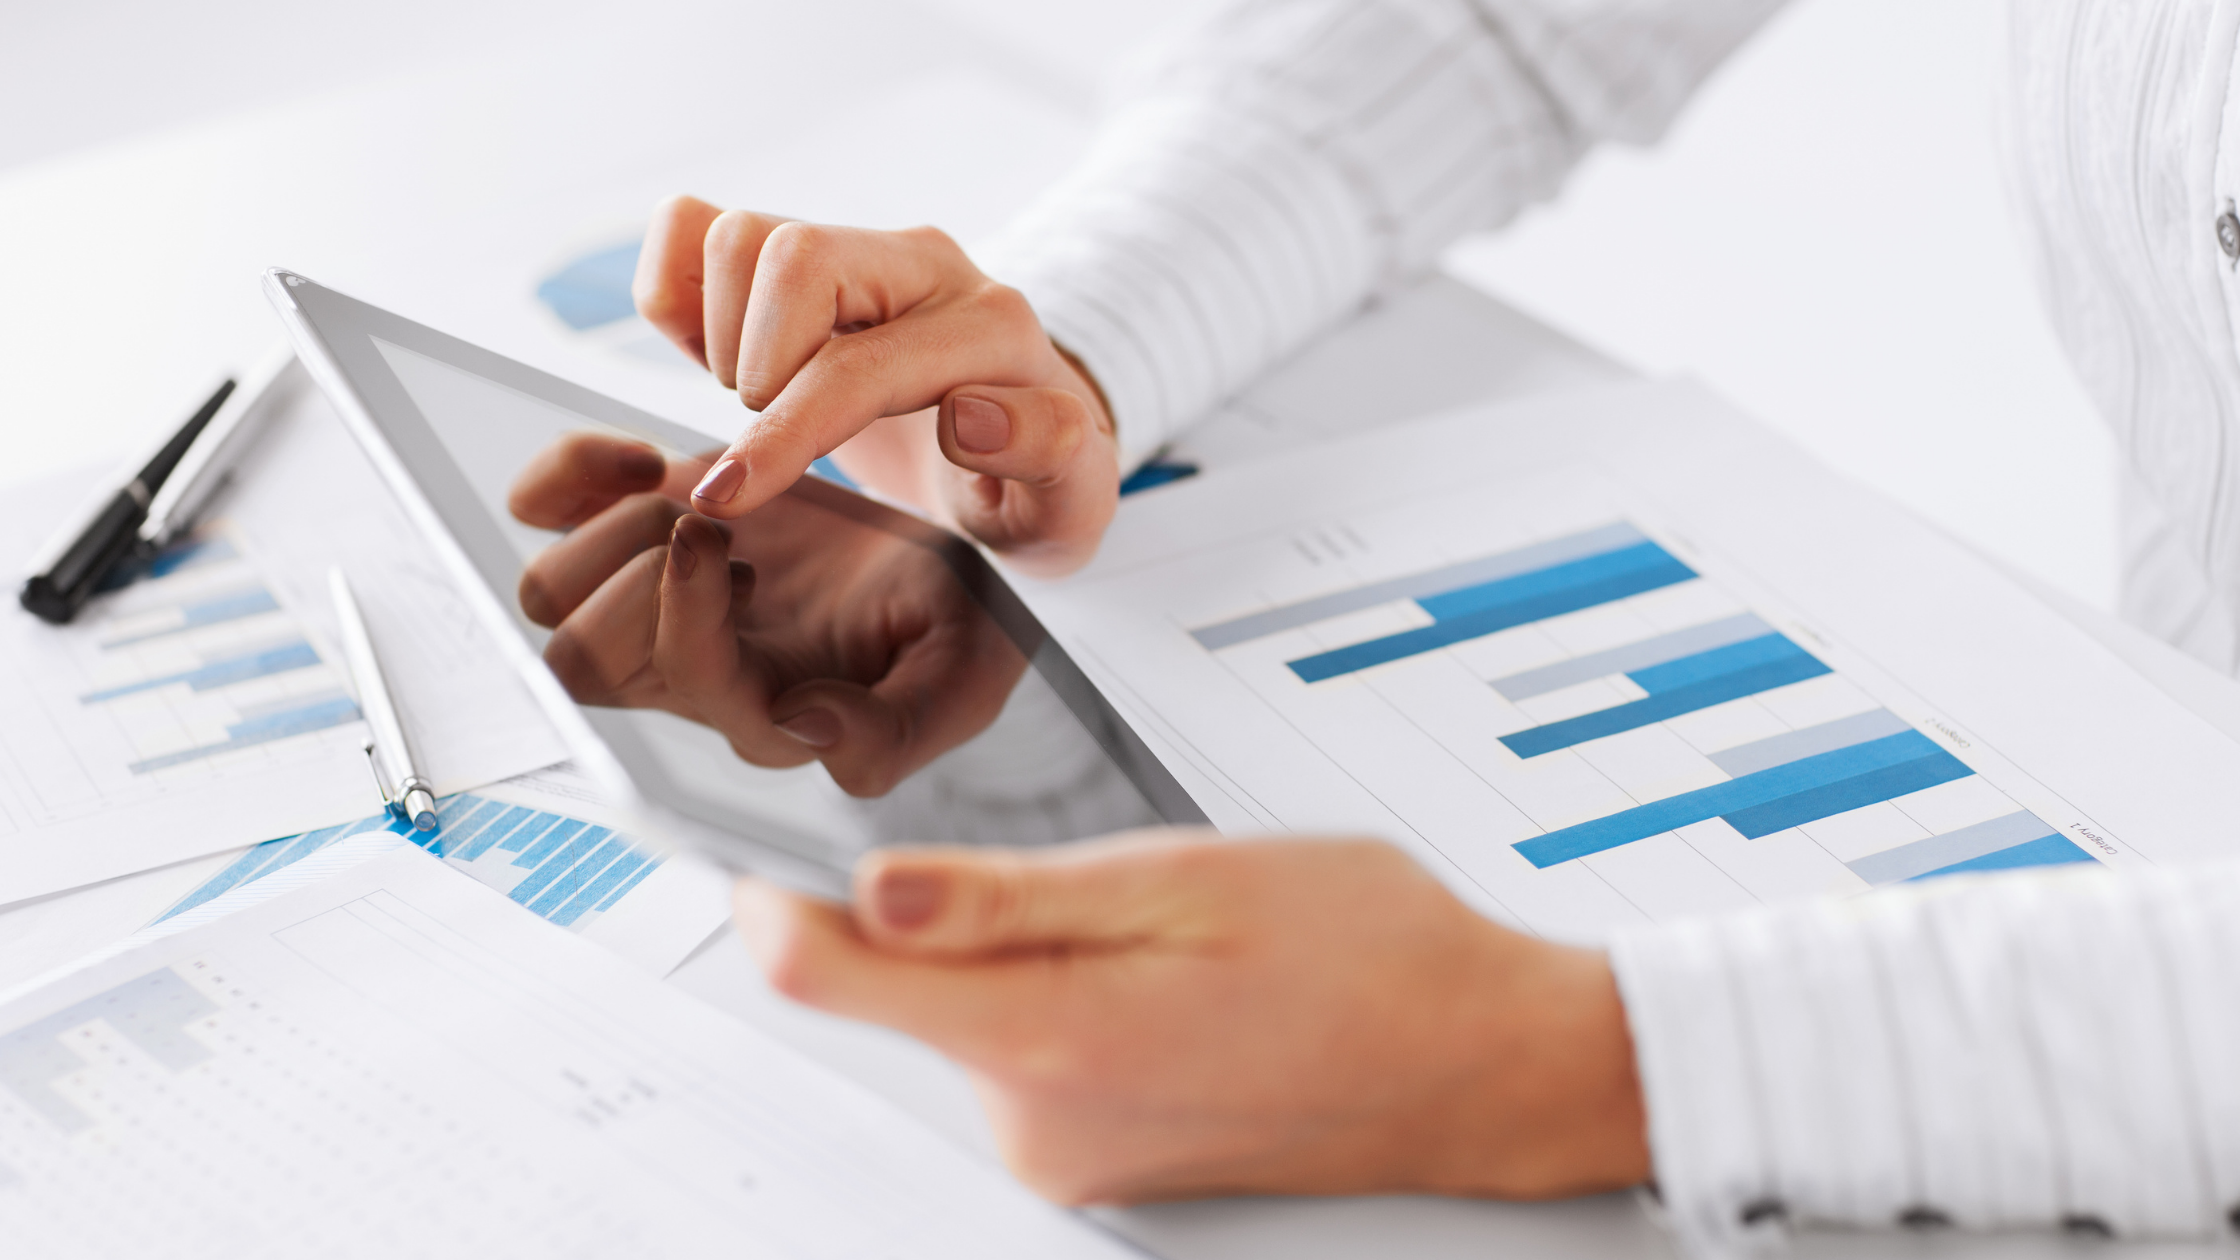 Why a streamlined CashFlow is important for SMEs